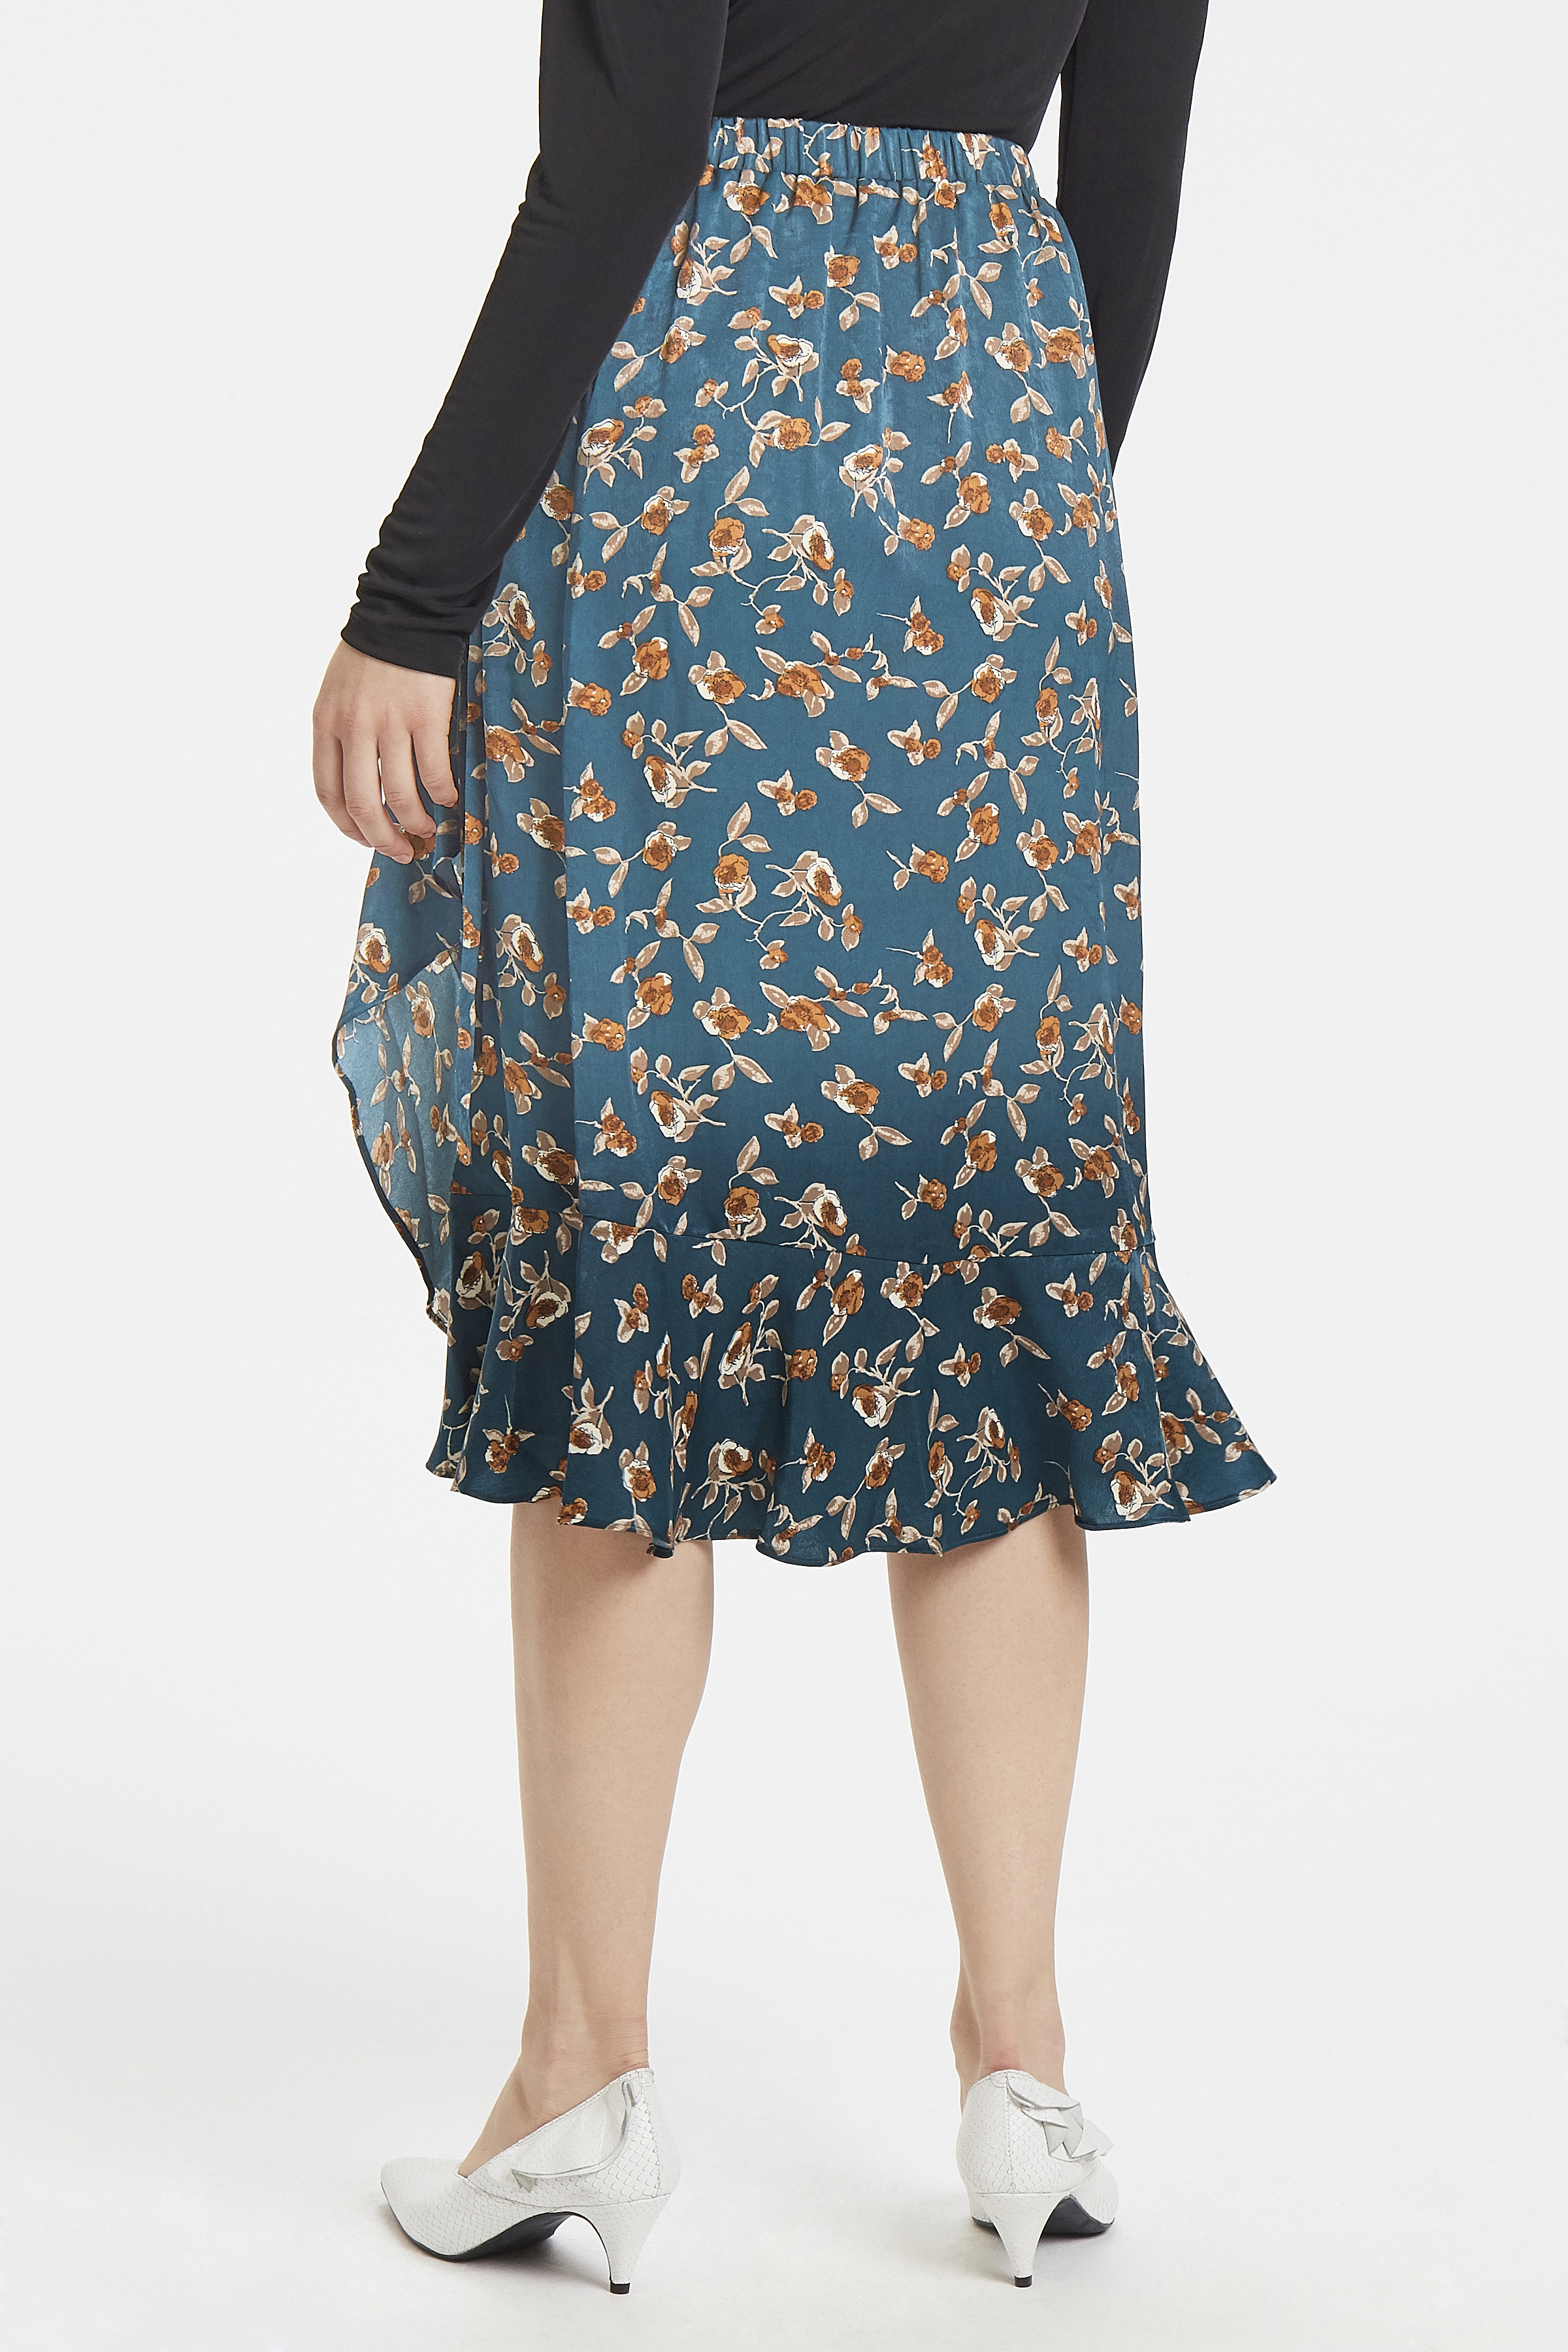 Majestic green combi 1 Skirt from b.young – Buy Majestic green combi 1 Skirt from size 34-42 here